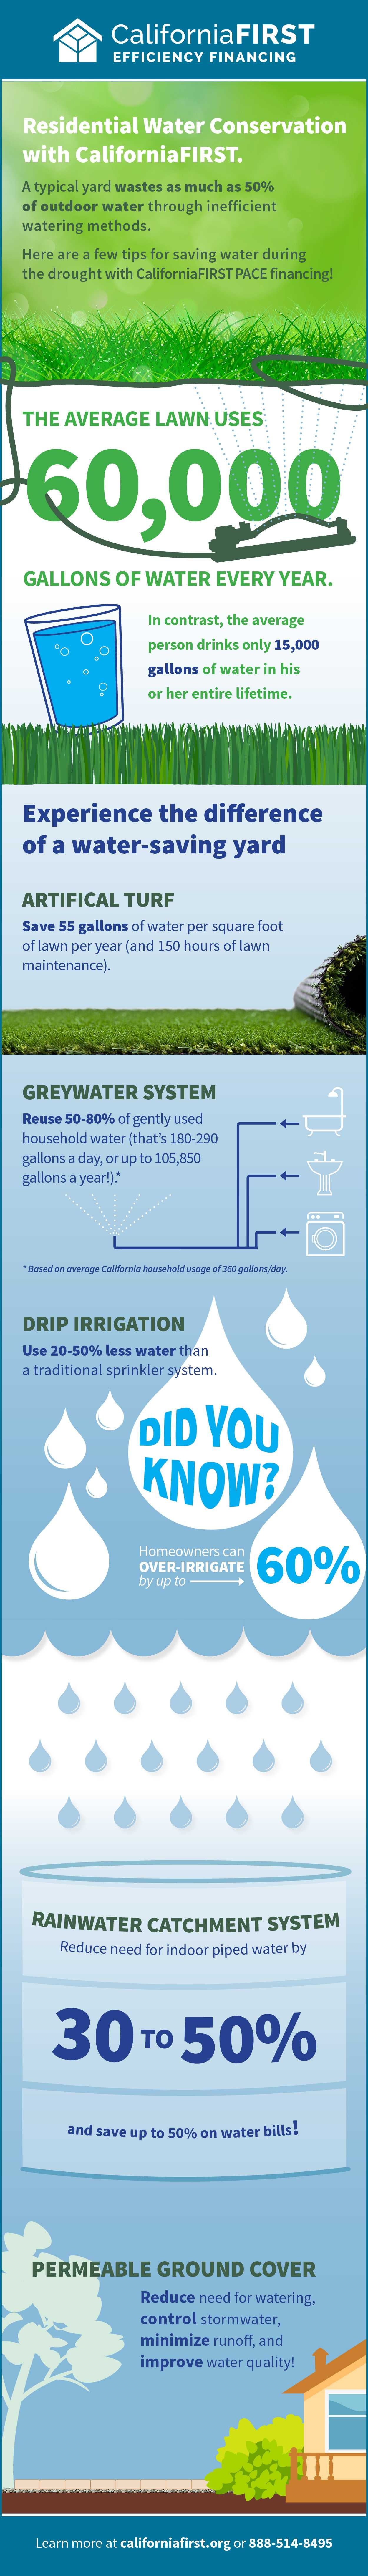 Residential Water Conservation Infographic CaliforniaFIRST